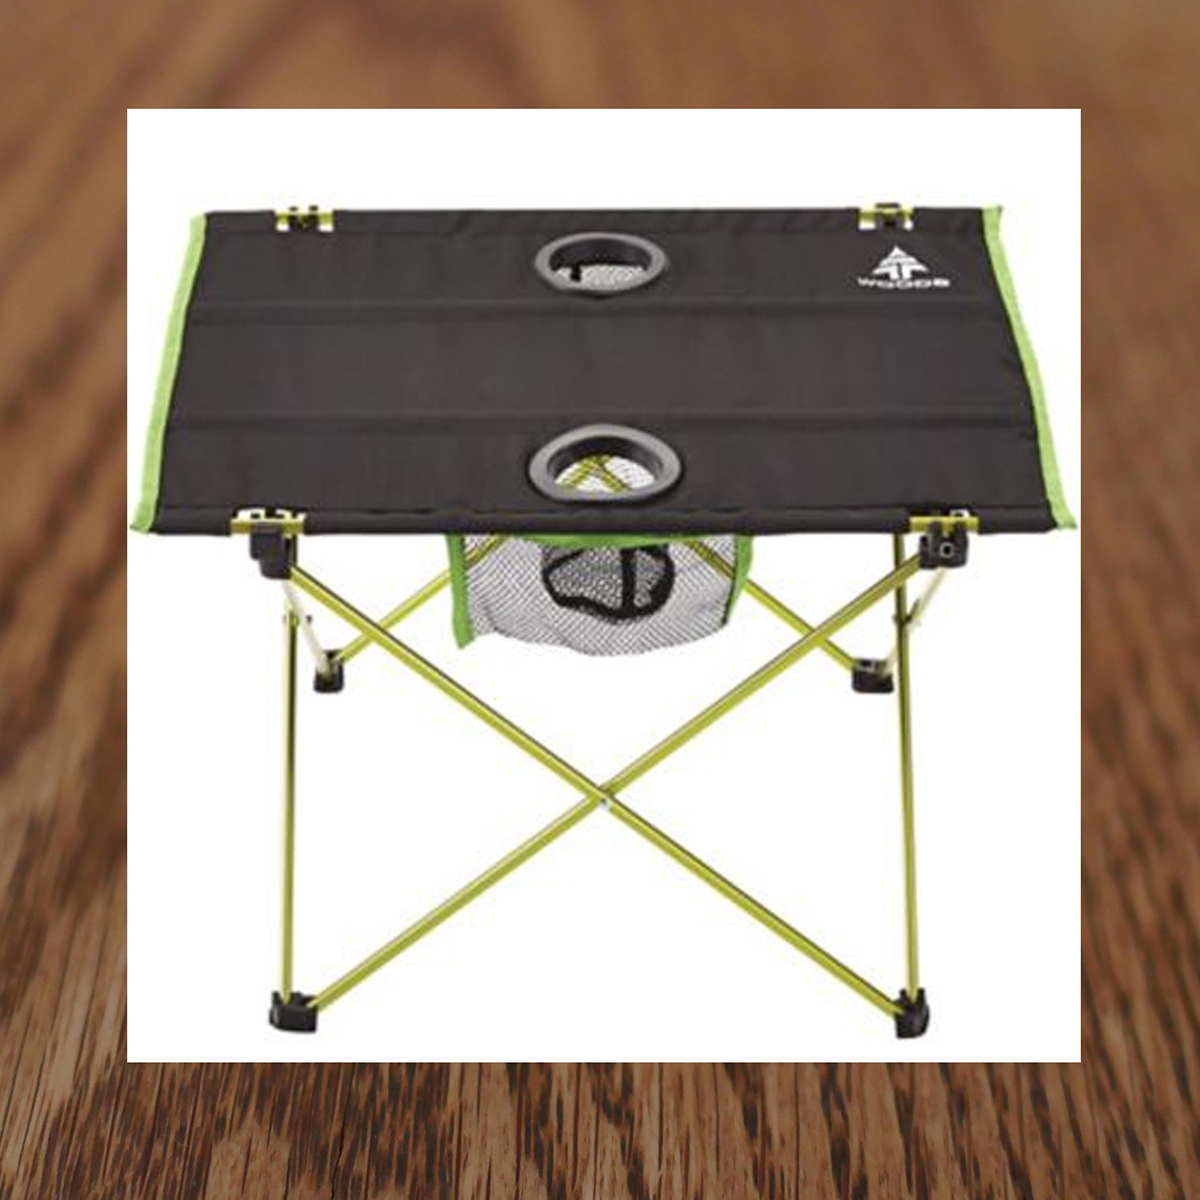 TABLE DE CAMPING  10$/location